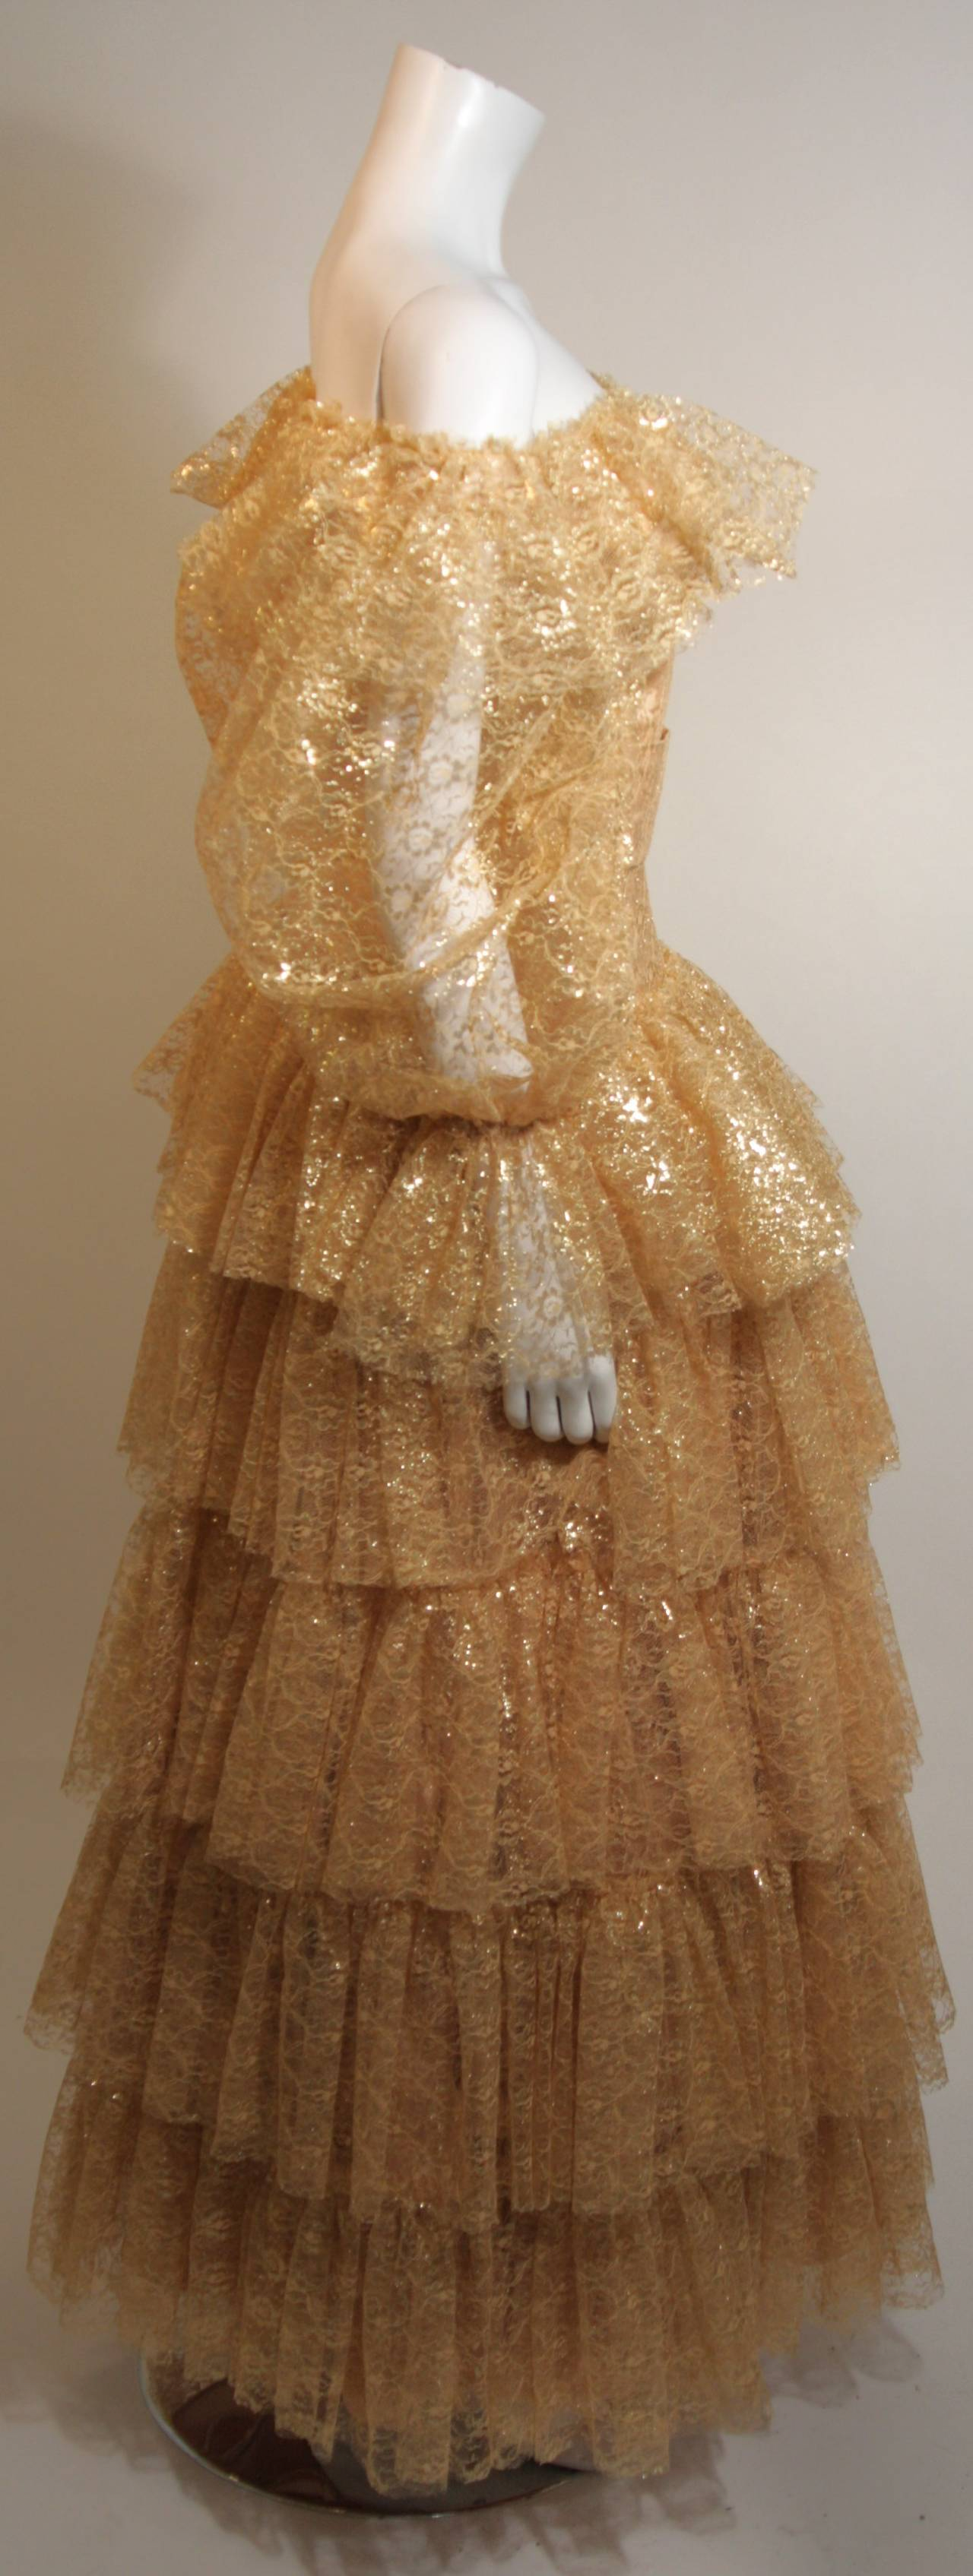 Attributed to Travilla Gold Tiered Lace Ball Gown with sheer lace sleeves size 4 5